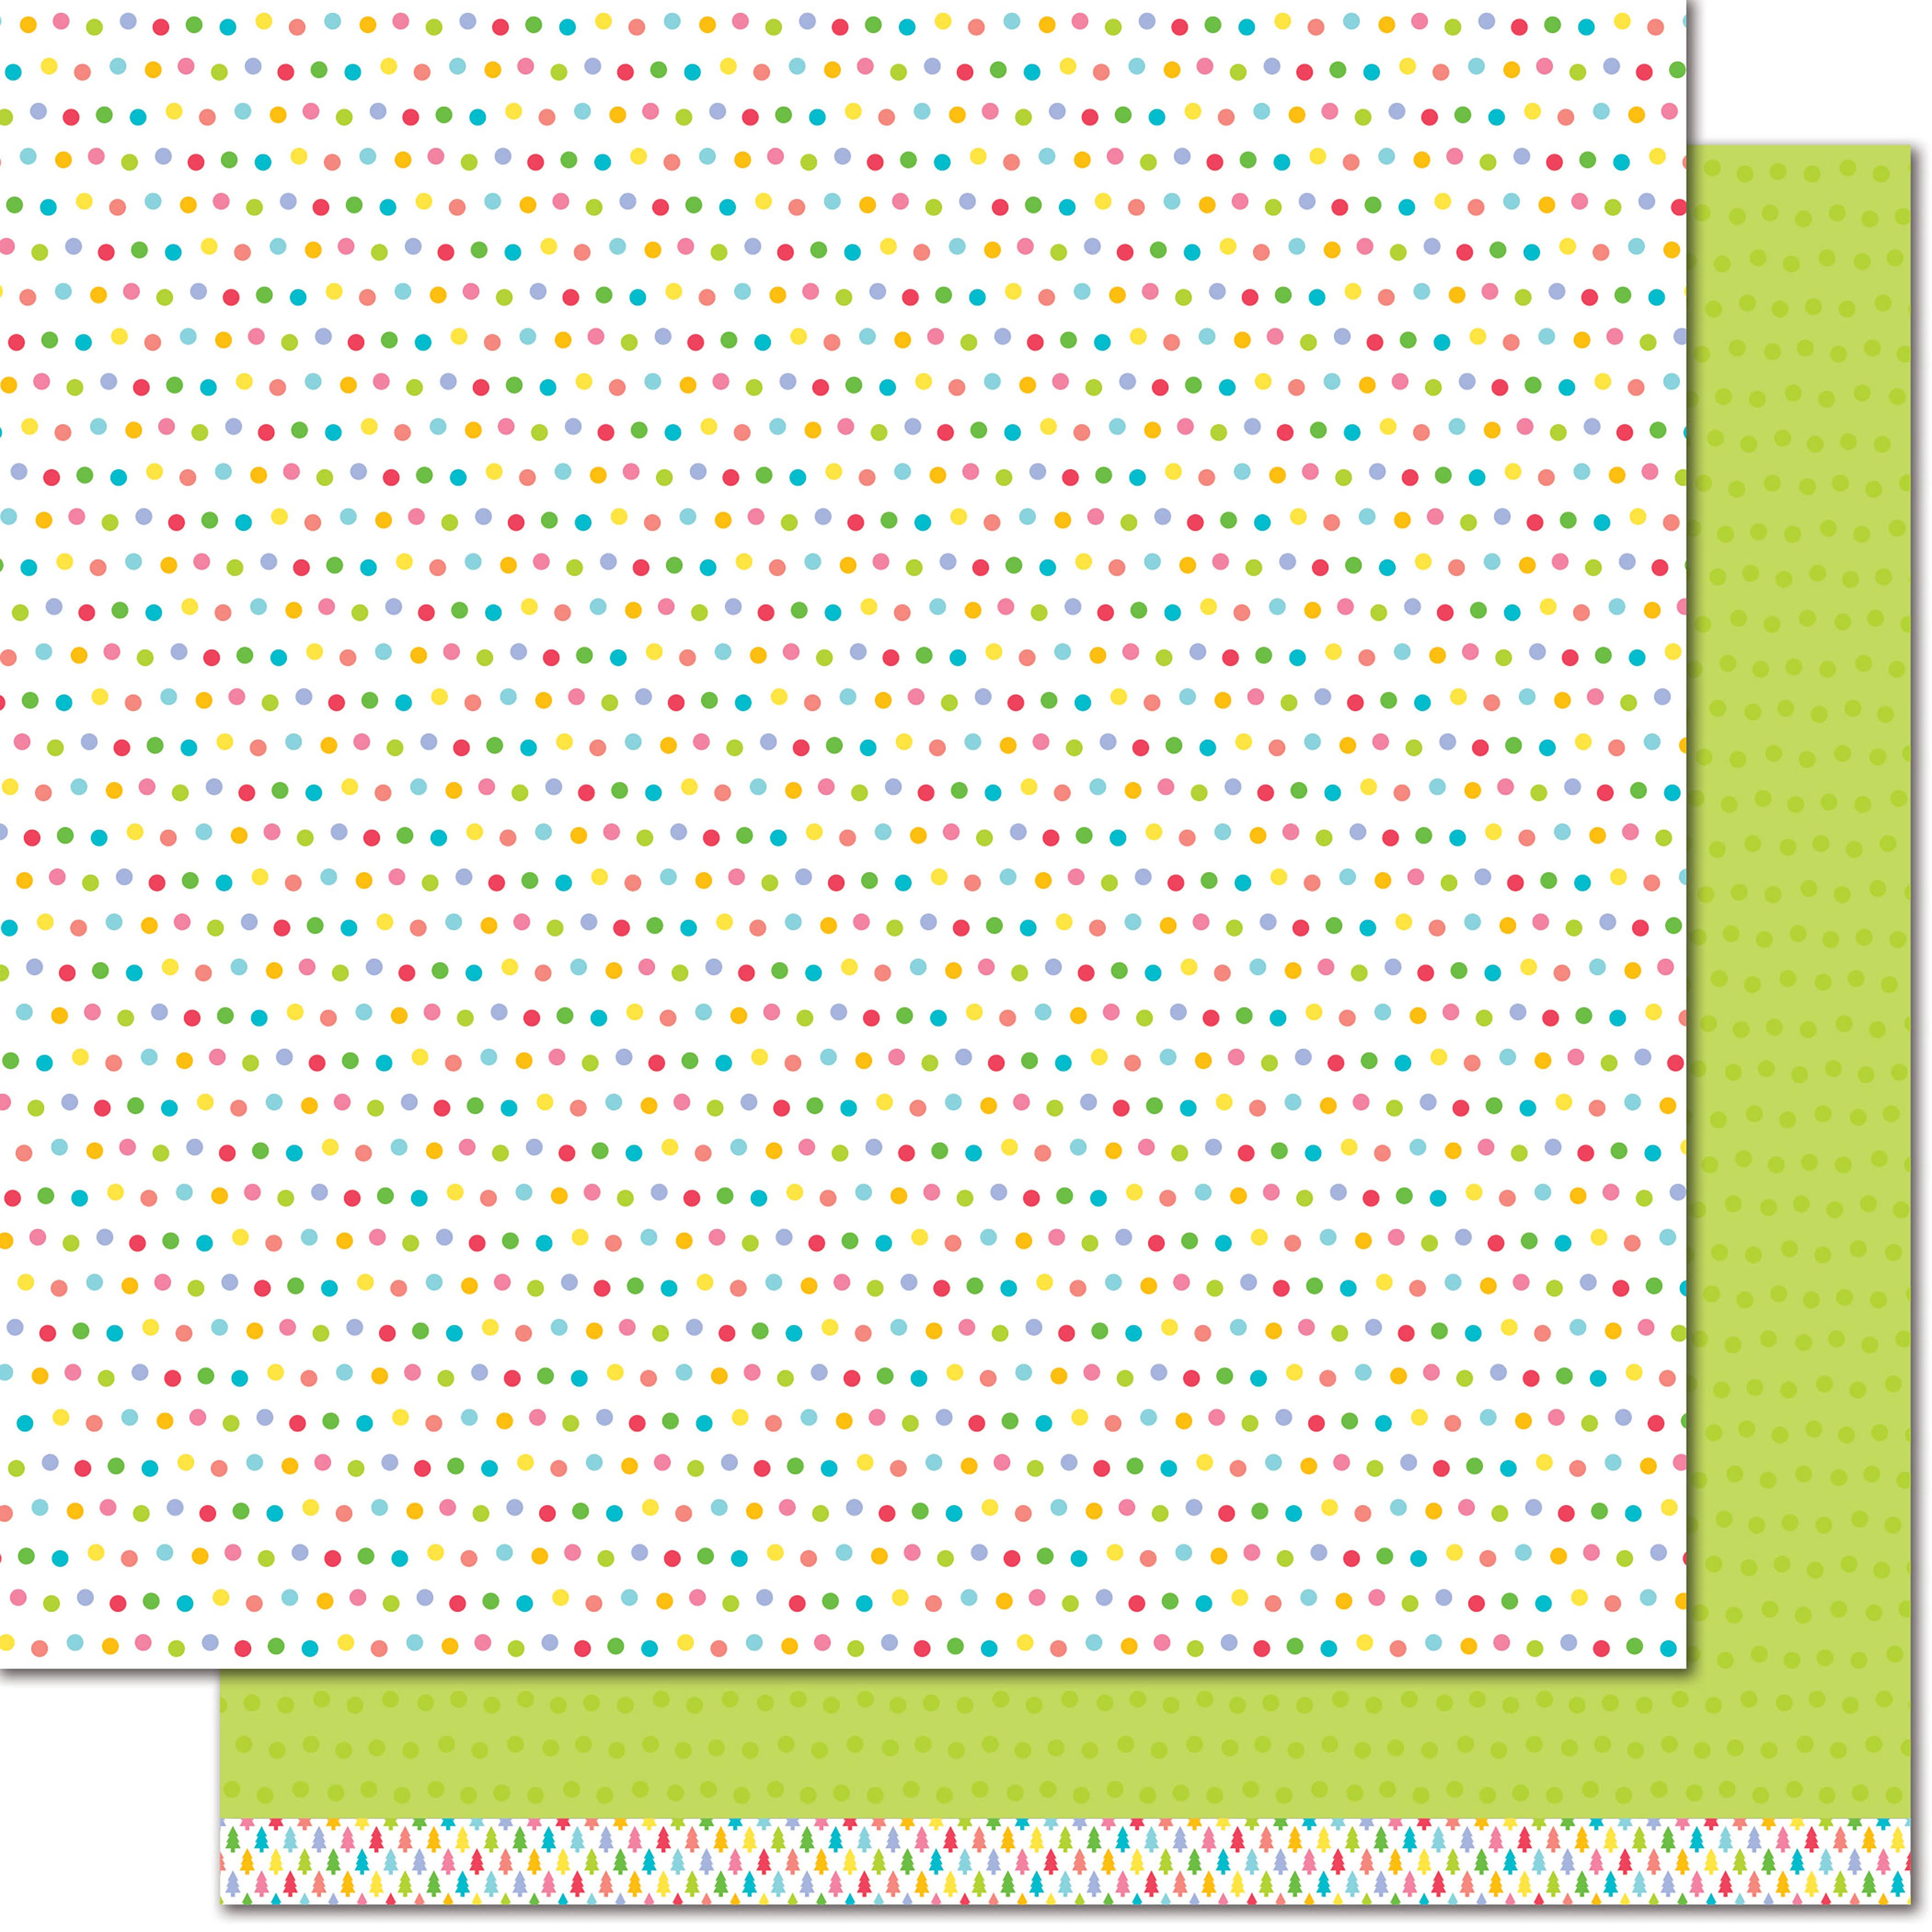 "Lawn Fawn Really Rainbow Collection Christmas Double Sided Paper - Green Holly, 12"" x 12"""